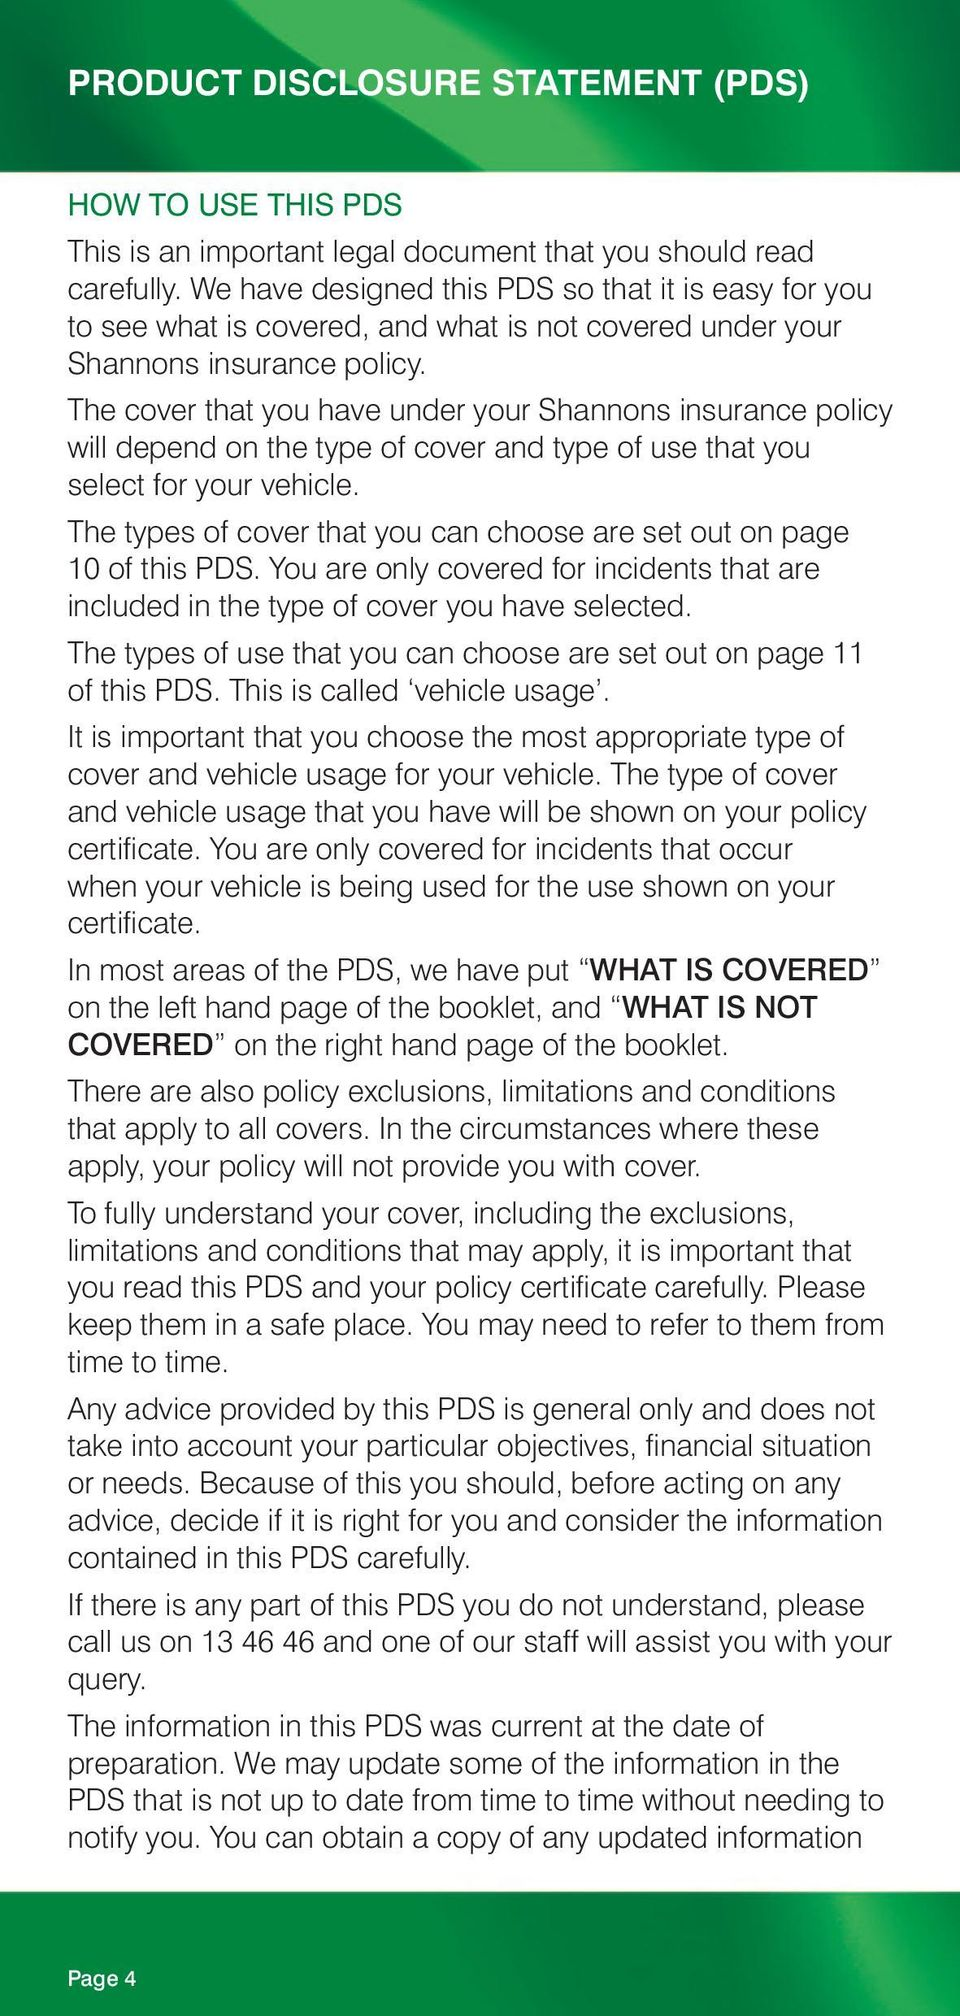 The cover that you have under your Shannons insurance policy will depend on the type of cover and type of use that you select for your vehicle.